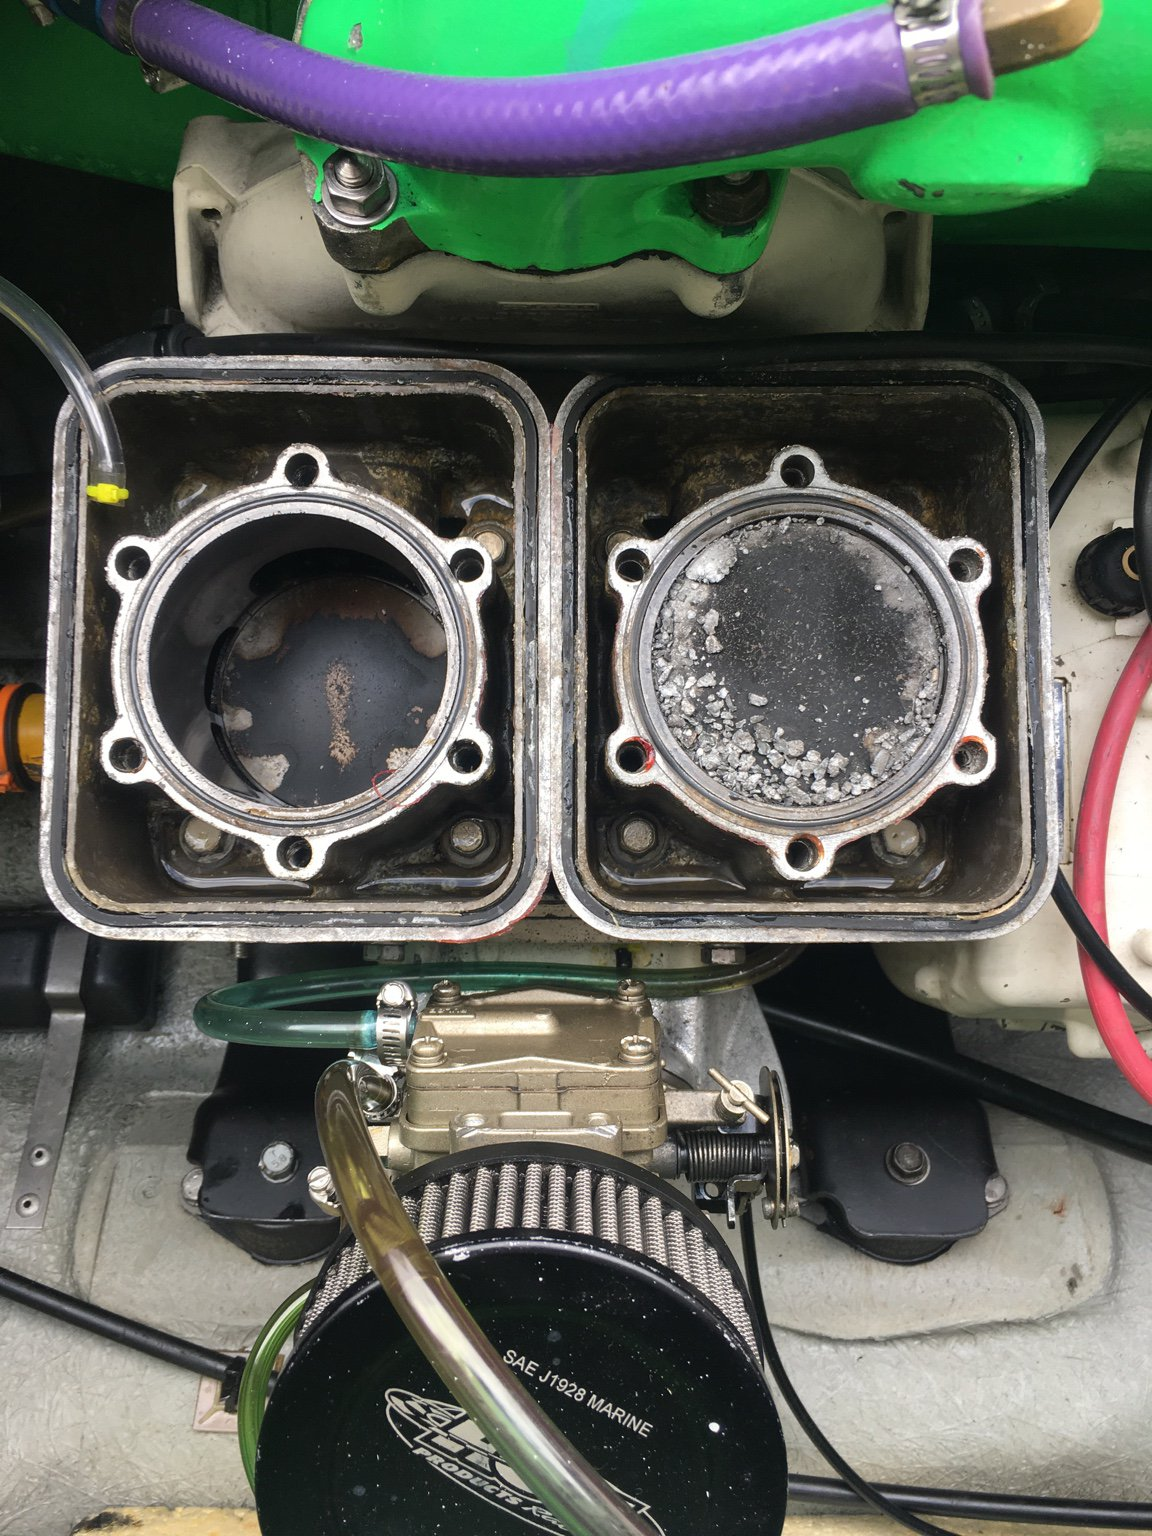 1992 seadoo sp wont start, only cranks over one time | Sea